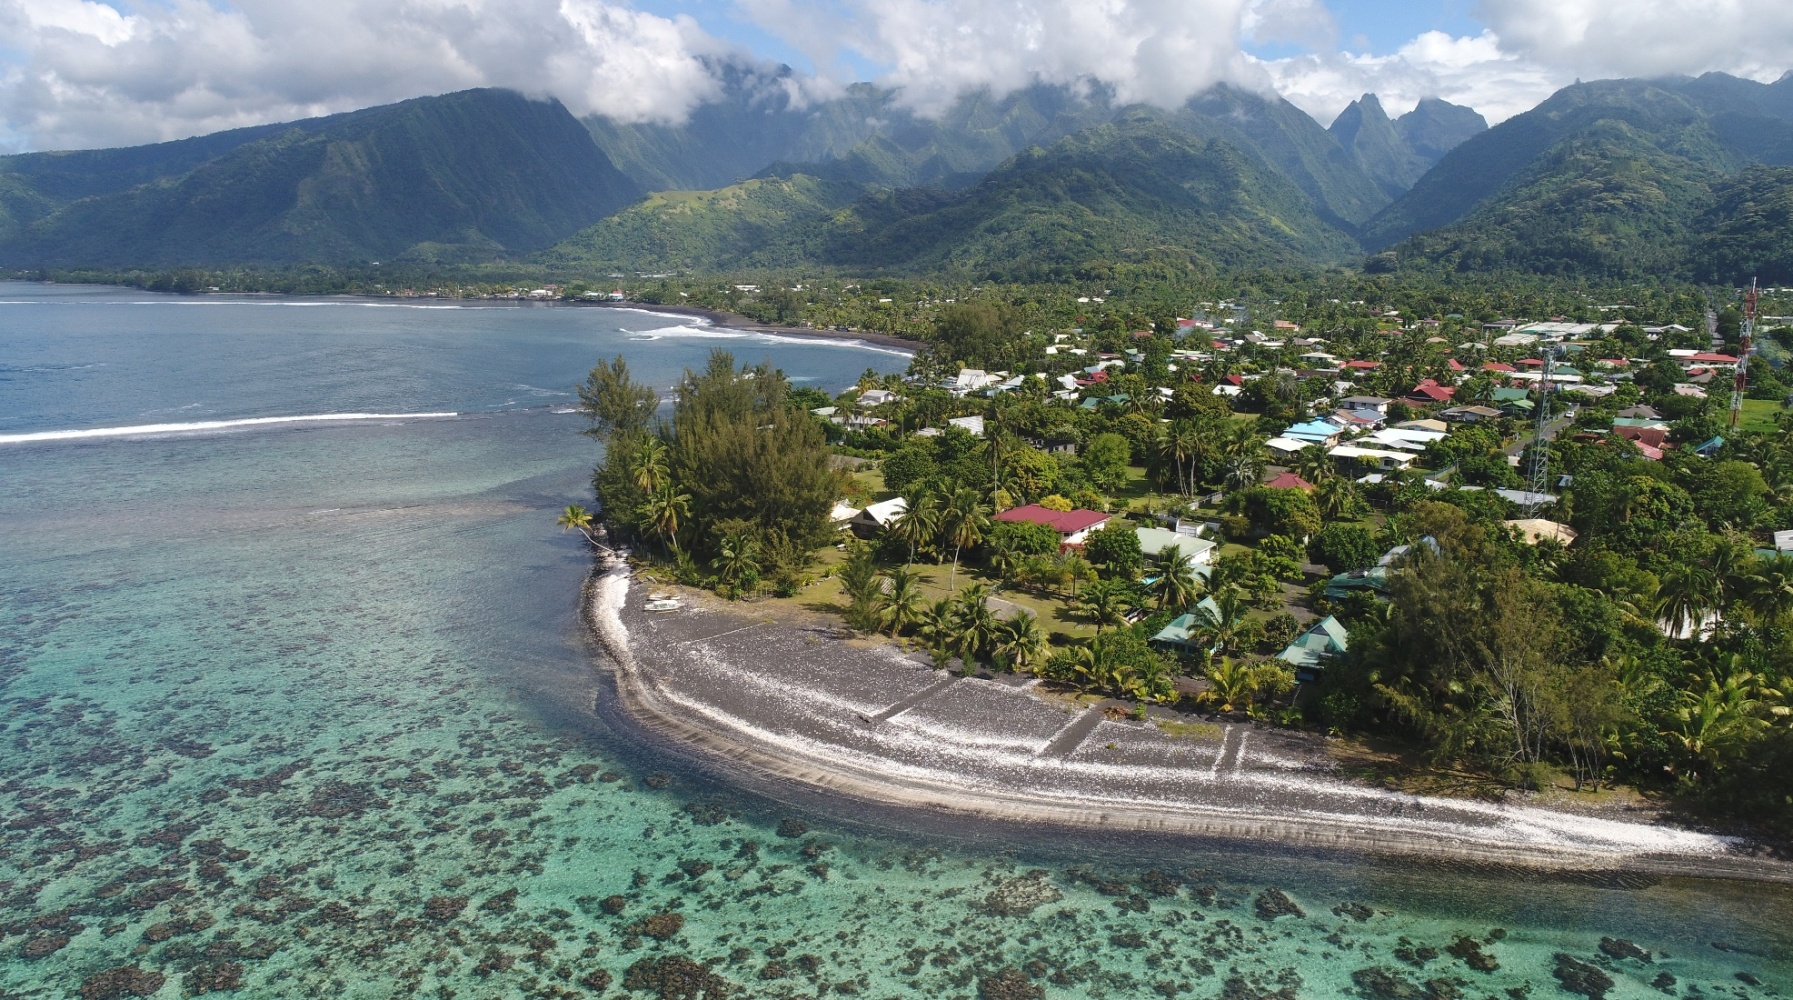 https://tahititourisme.it/wp-content/uploads/2019/08/DJI_0444-0.922MO.jpg